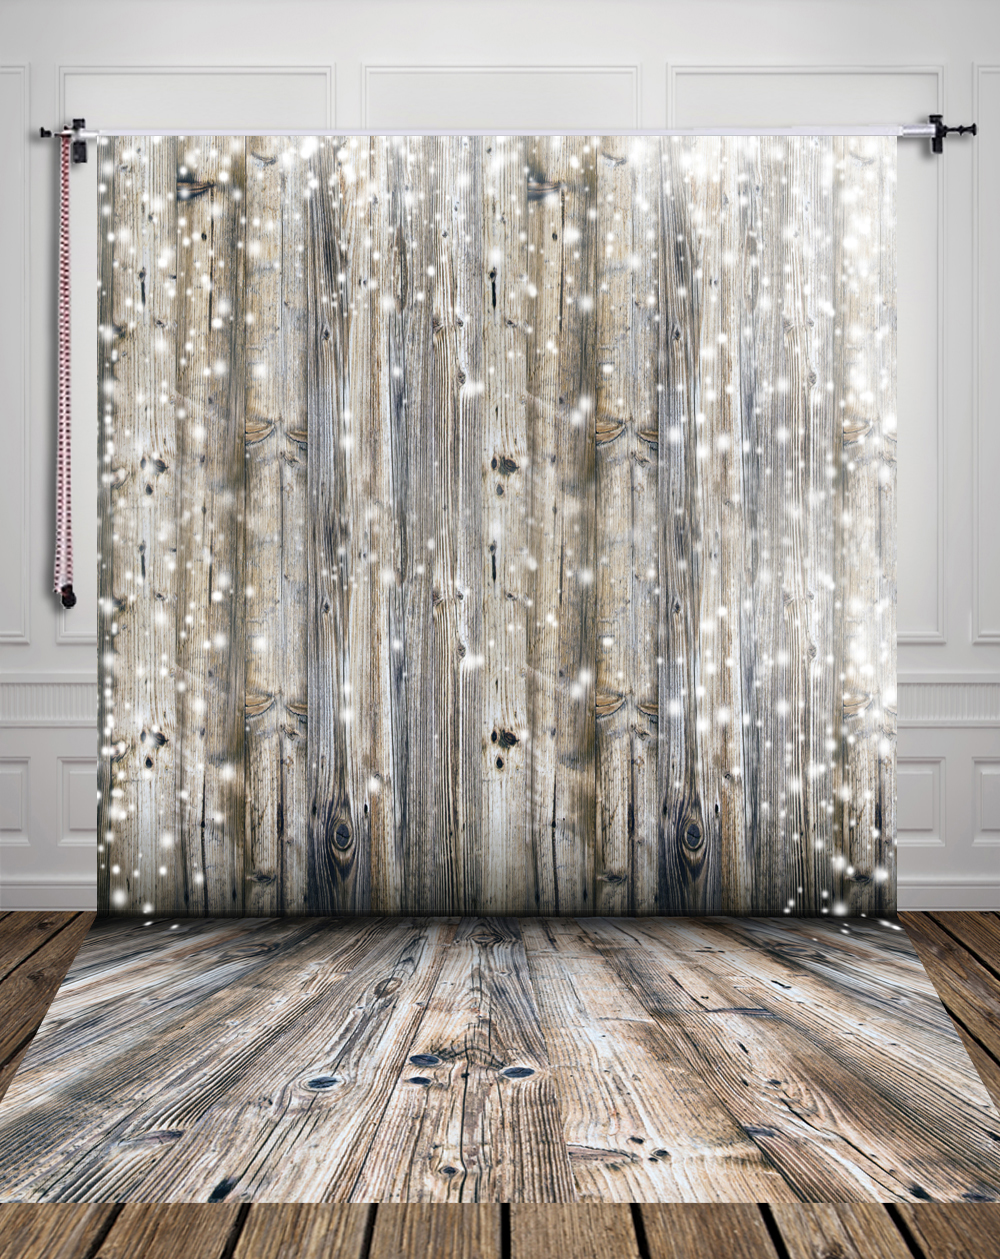 Studio Photography Background Christmas Wood Backdrop Studio Newborn Backdrops Snow Sparkle Backdrop D-2389 600cm 300cm fundo snow footprints house3d baby photography backdrop background lk 1929